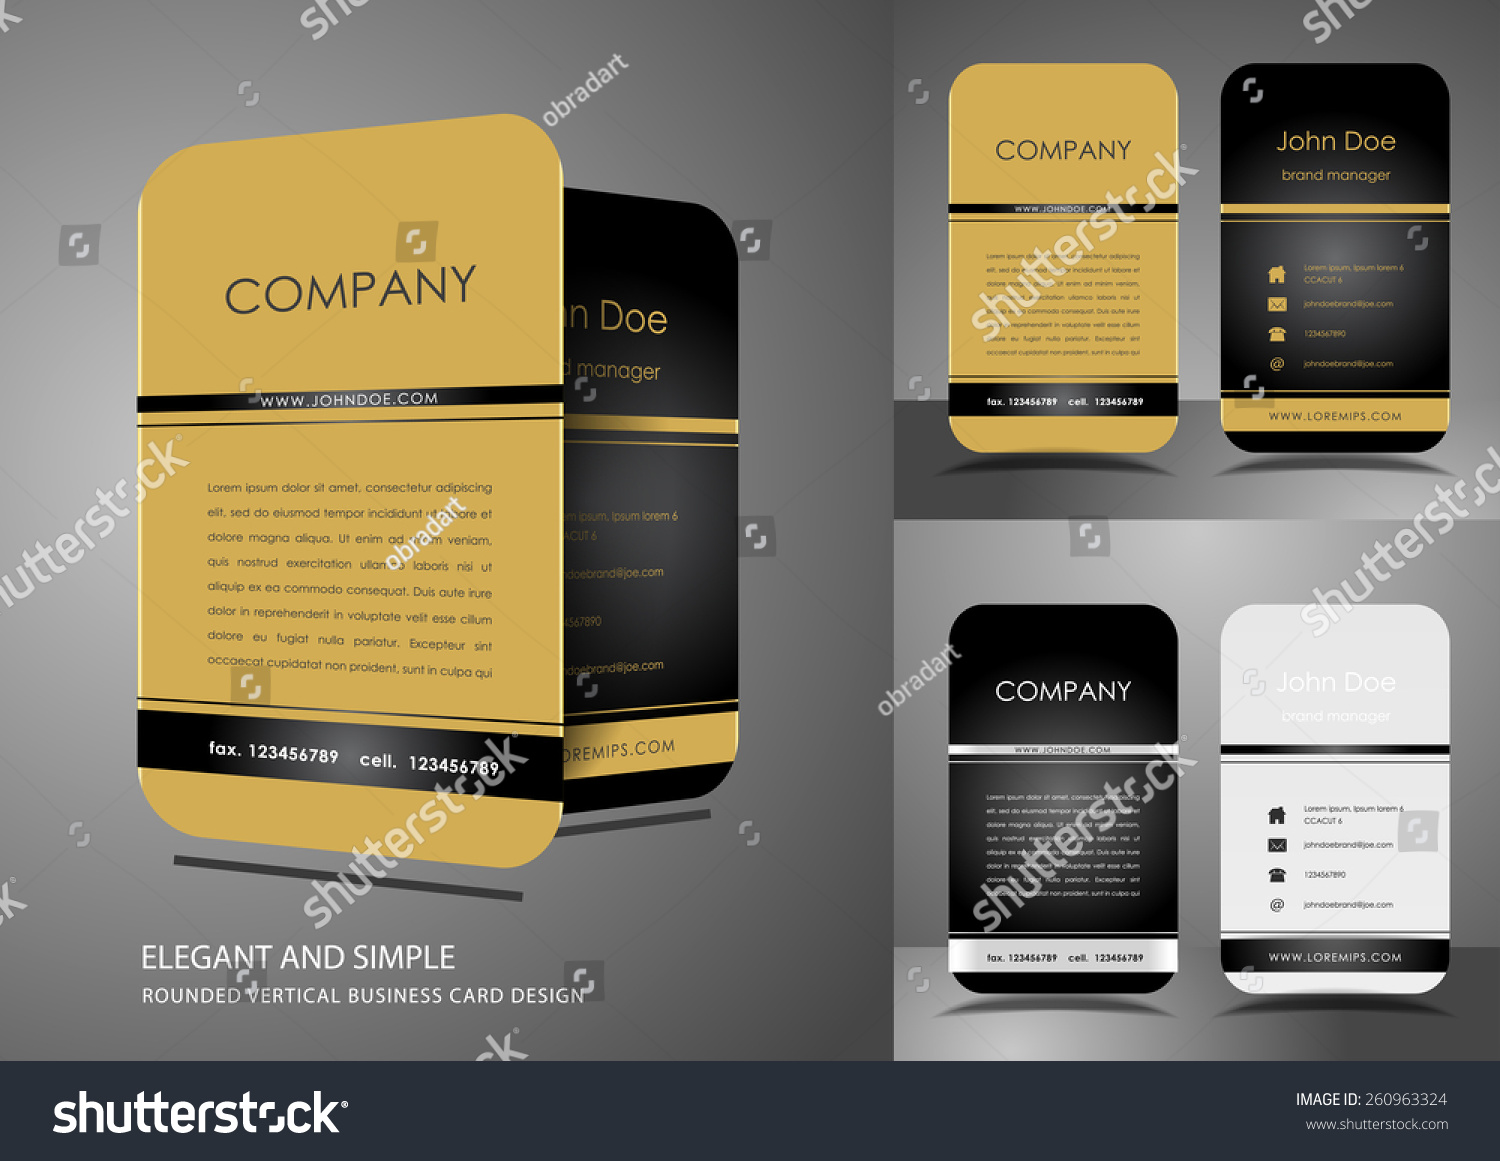 Gold Color Business Cards Image collections - Free Business Cards